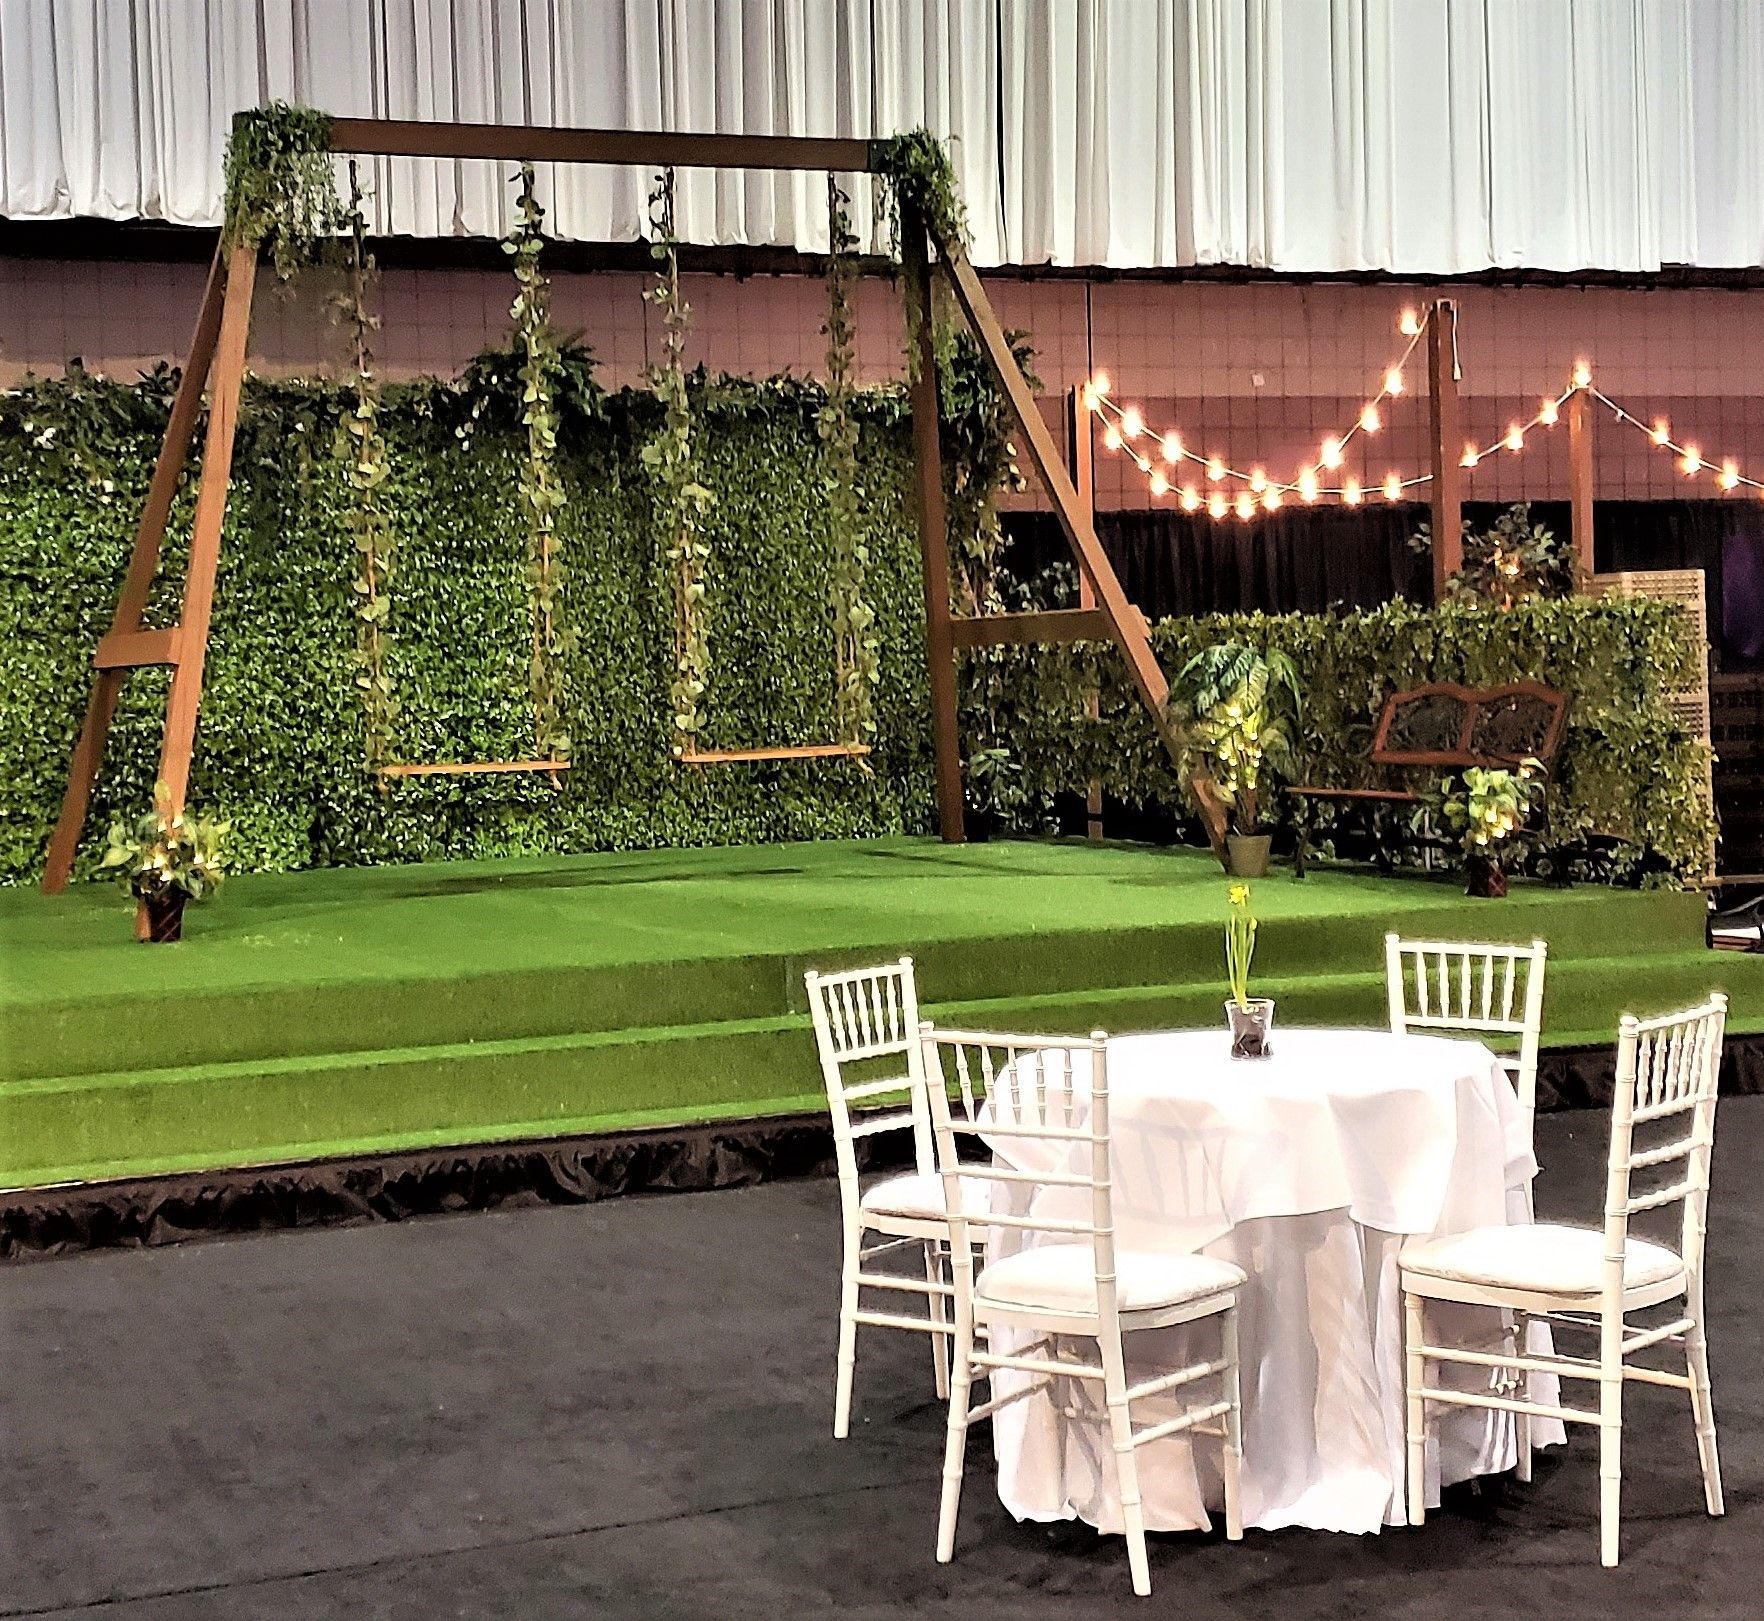 Handmade Swing Set Perfect For An Outdoor Wedding Or Even Inside A Venue Wedding Swing Party Rentals Event Decor